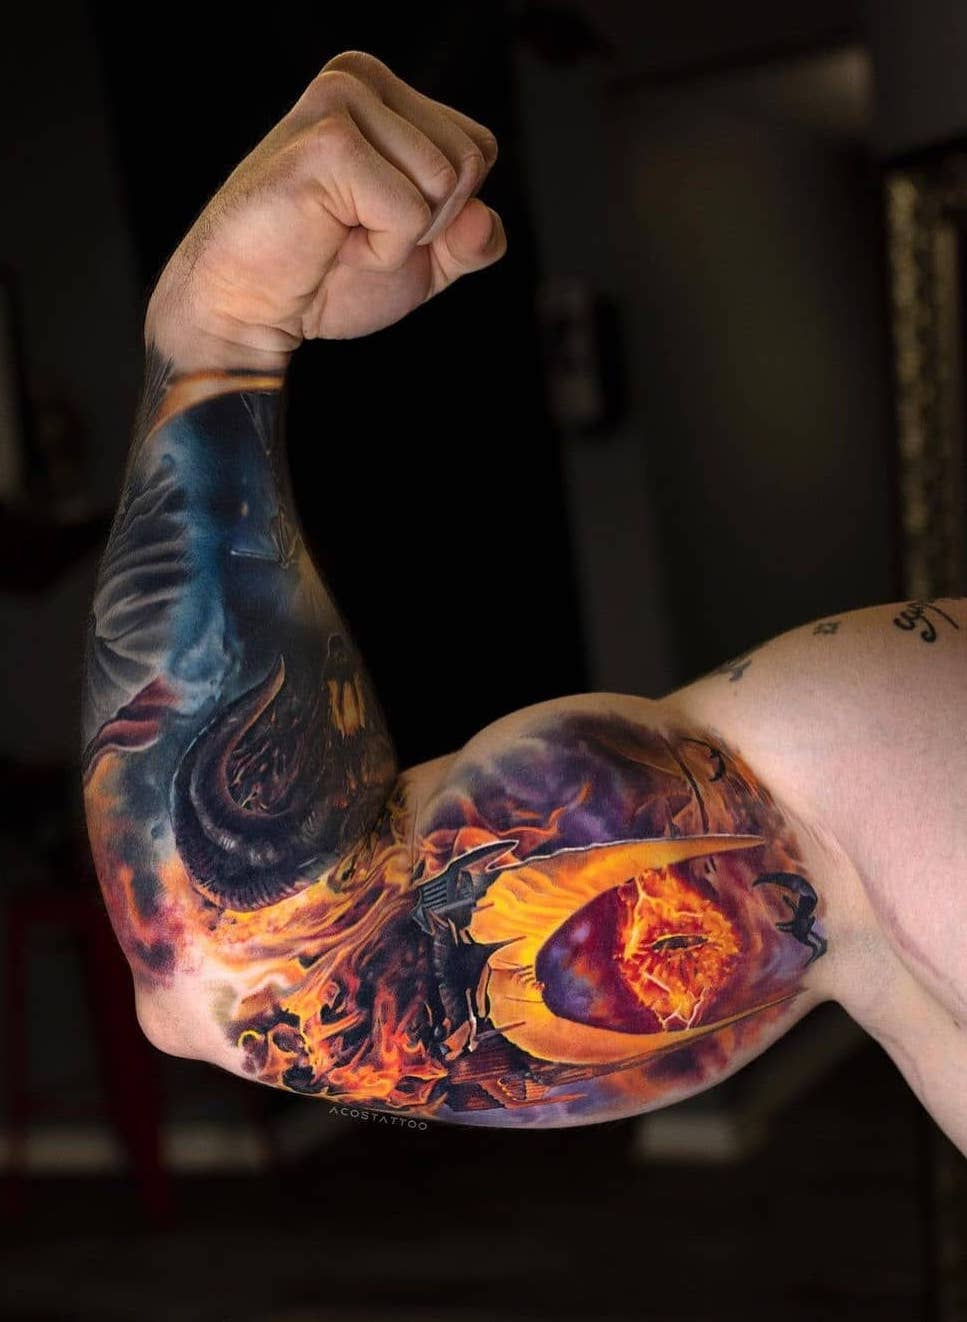 Spooky But Colorful 3D Tattoo